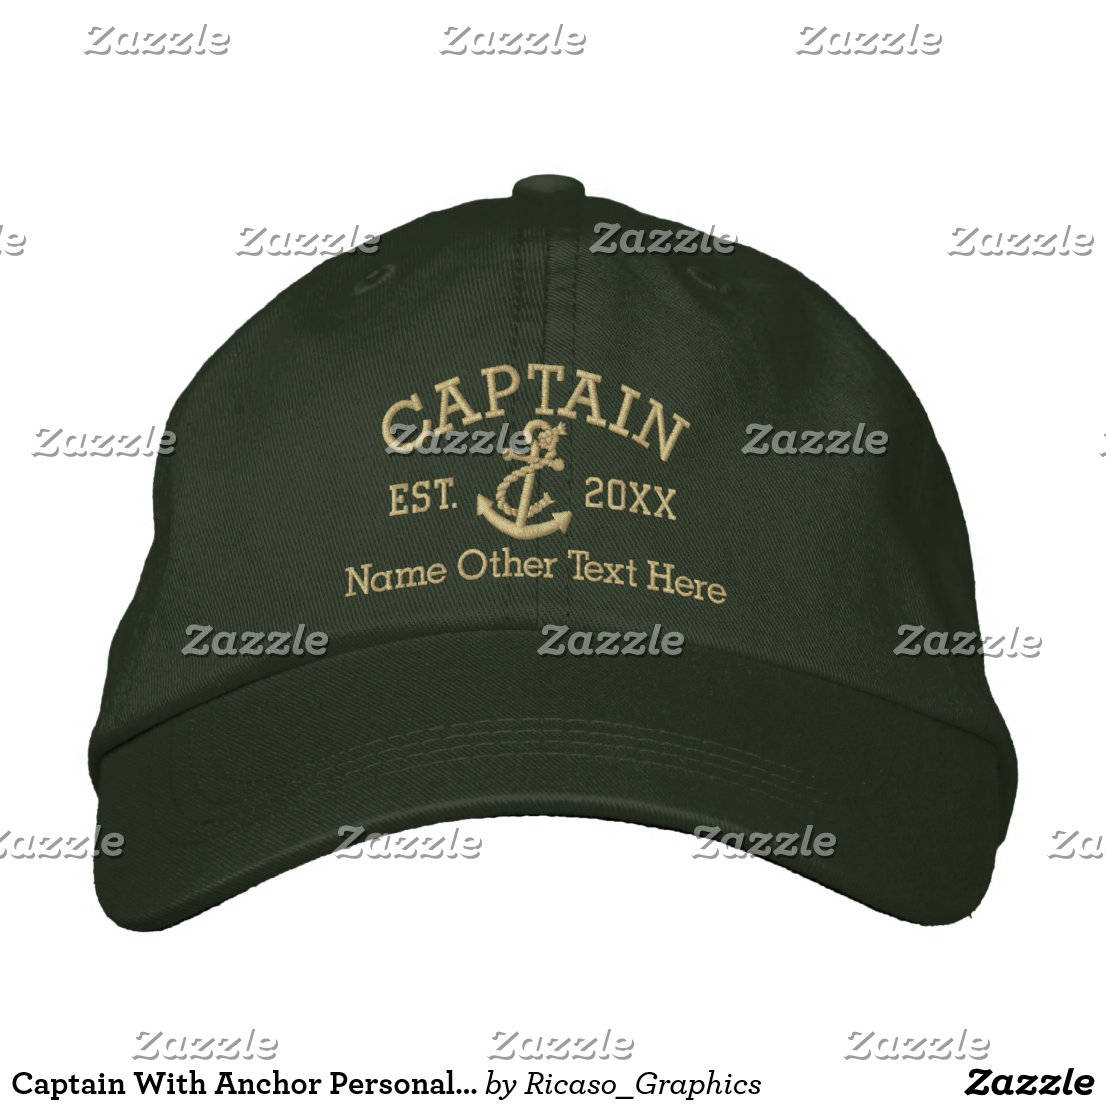 Captain With Anchor Personalized